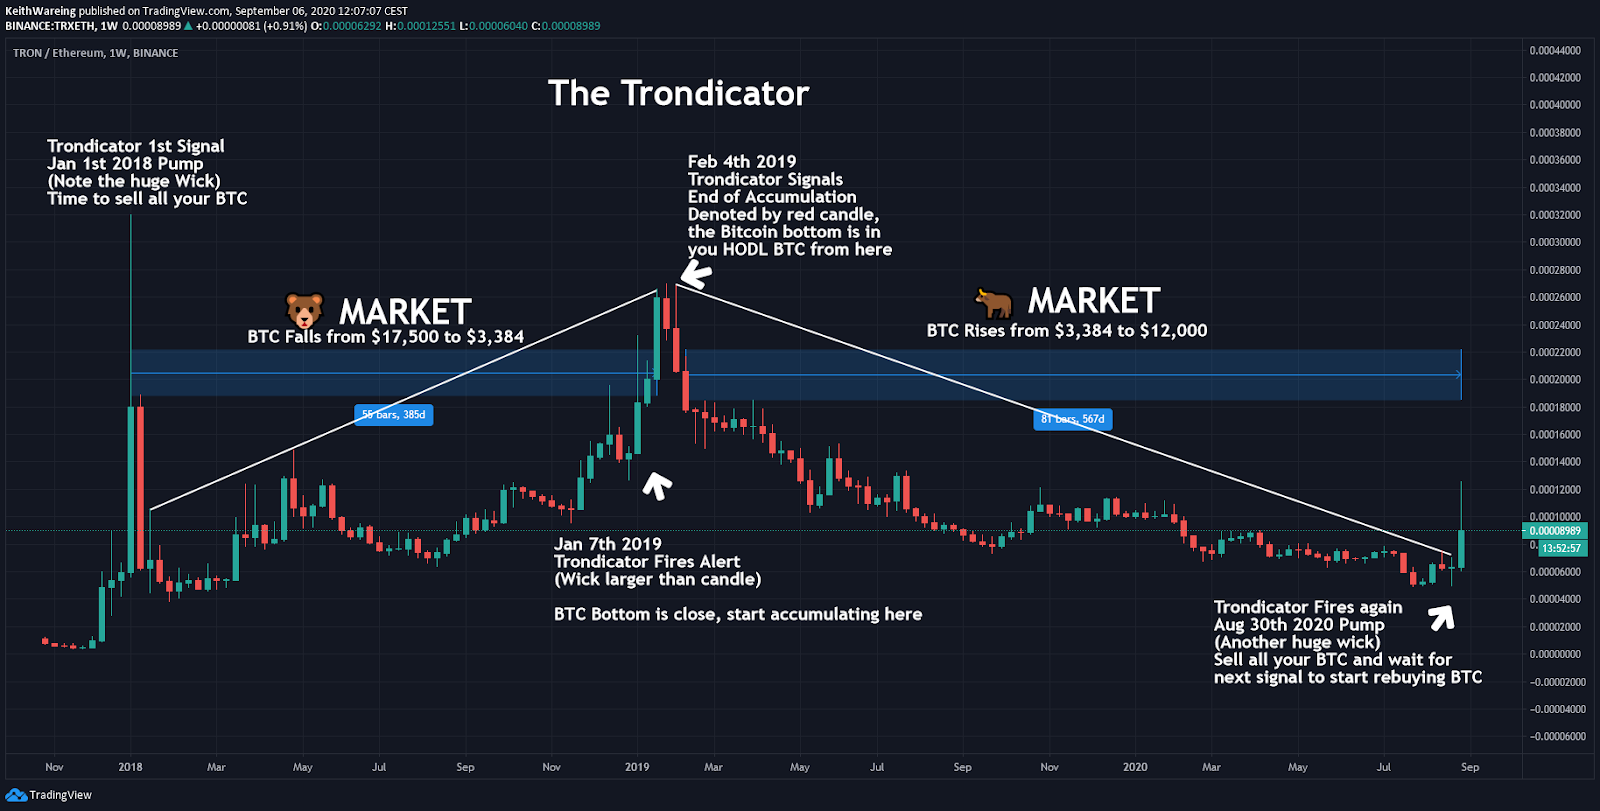 TRX/ETH 1-week chart. Source: TradingView